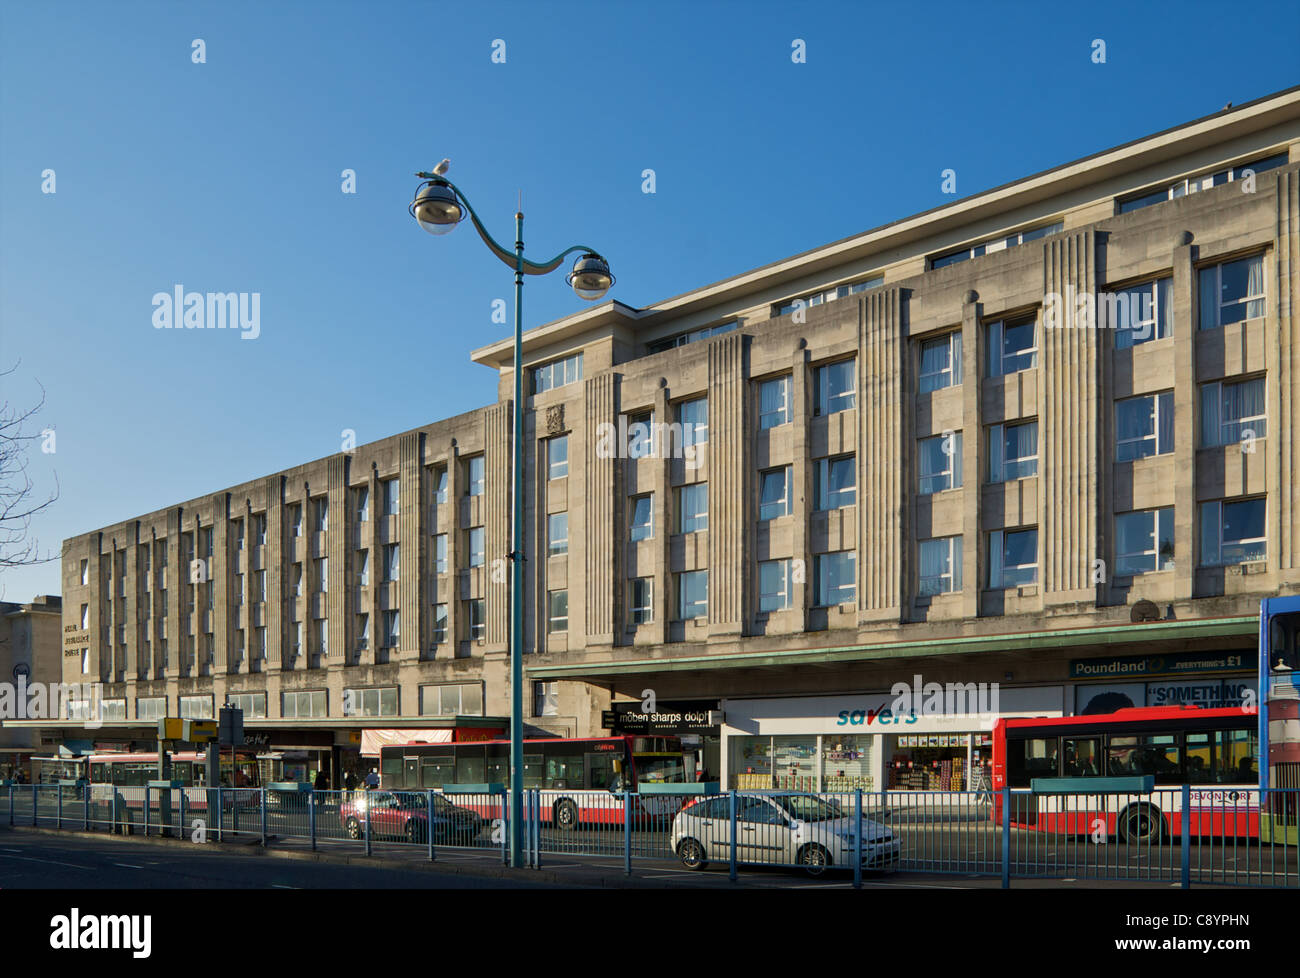 Pearl Assurance House, Plymouth - Stock Image